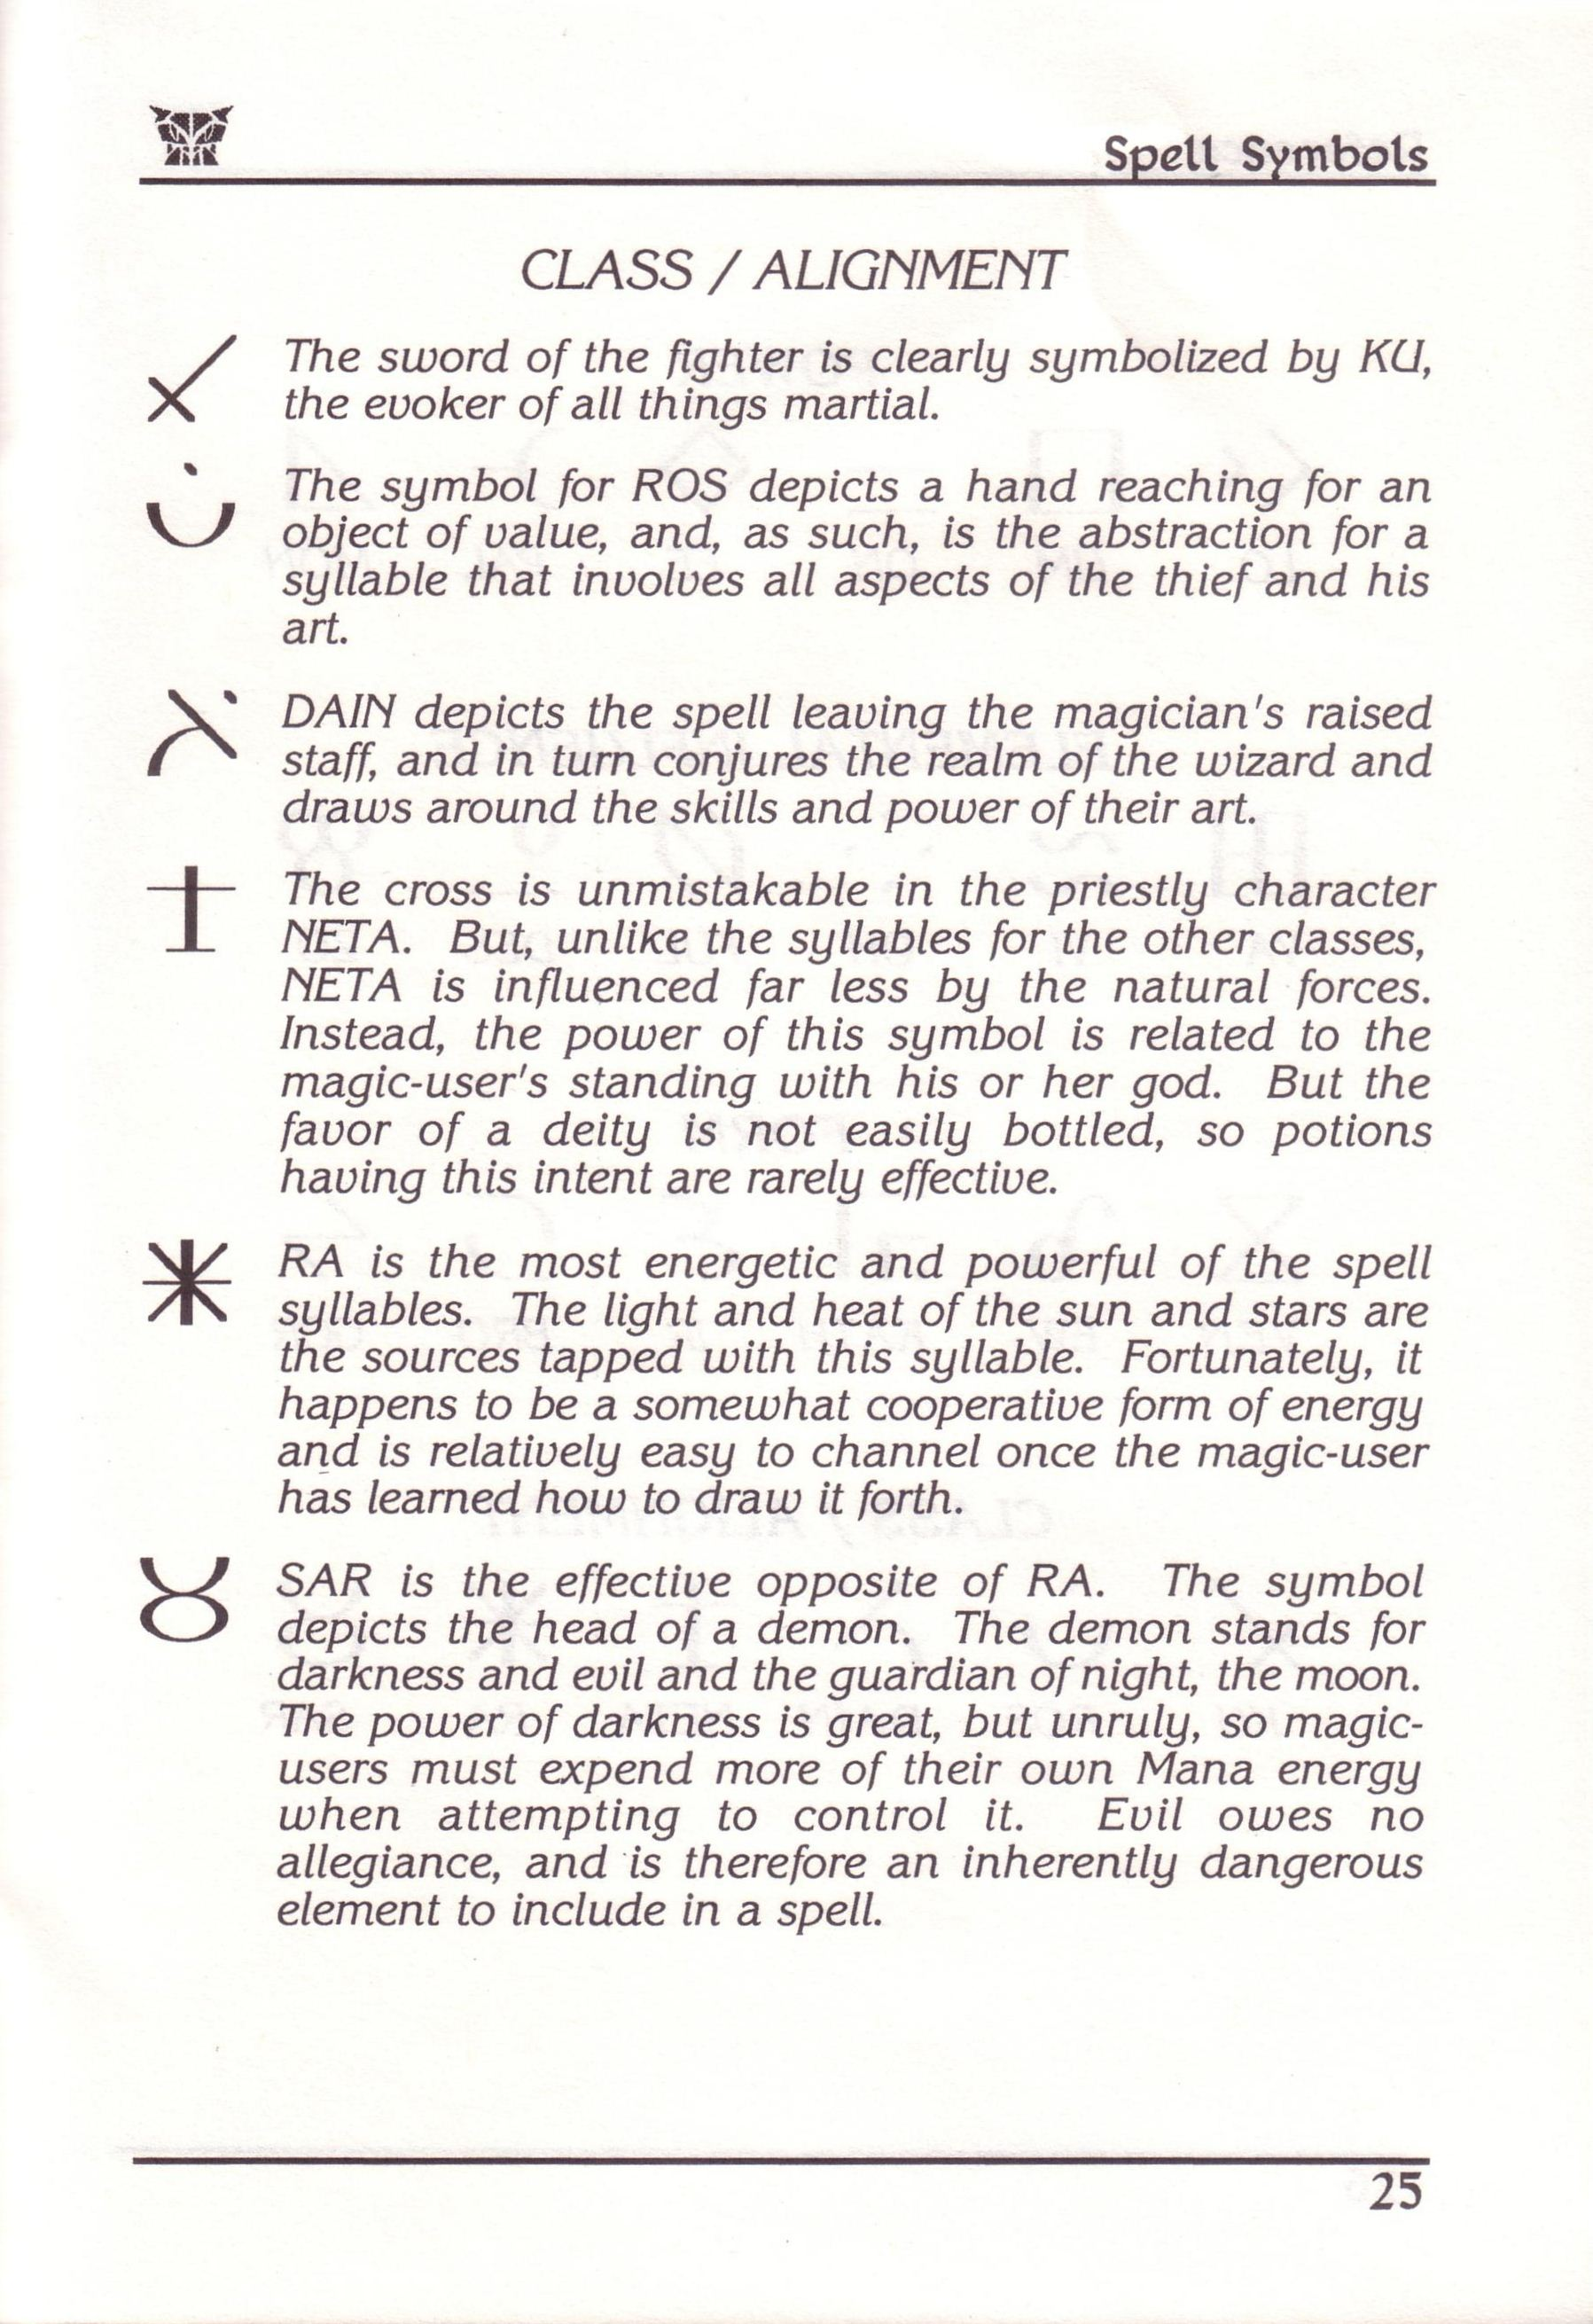 Dungeon Master for PC with FTL Sound Adapter (US Release) - Manual Page 49